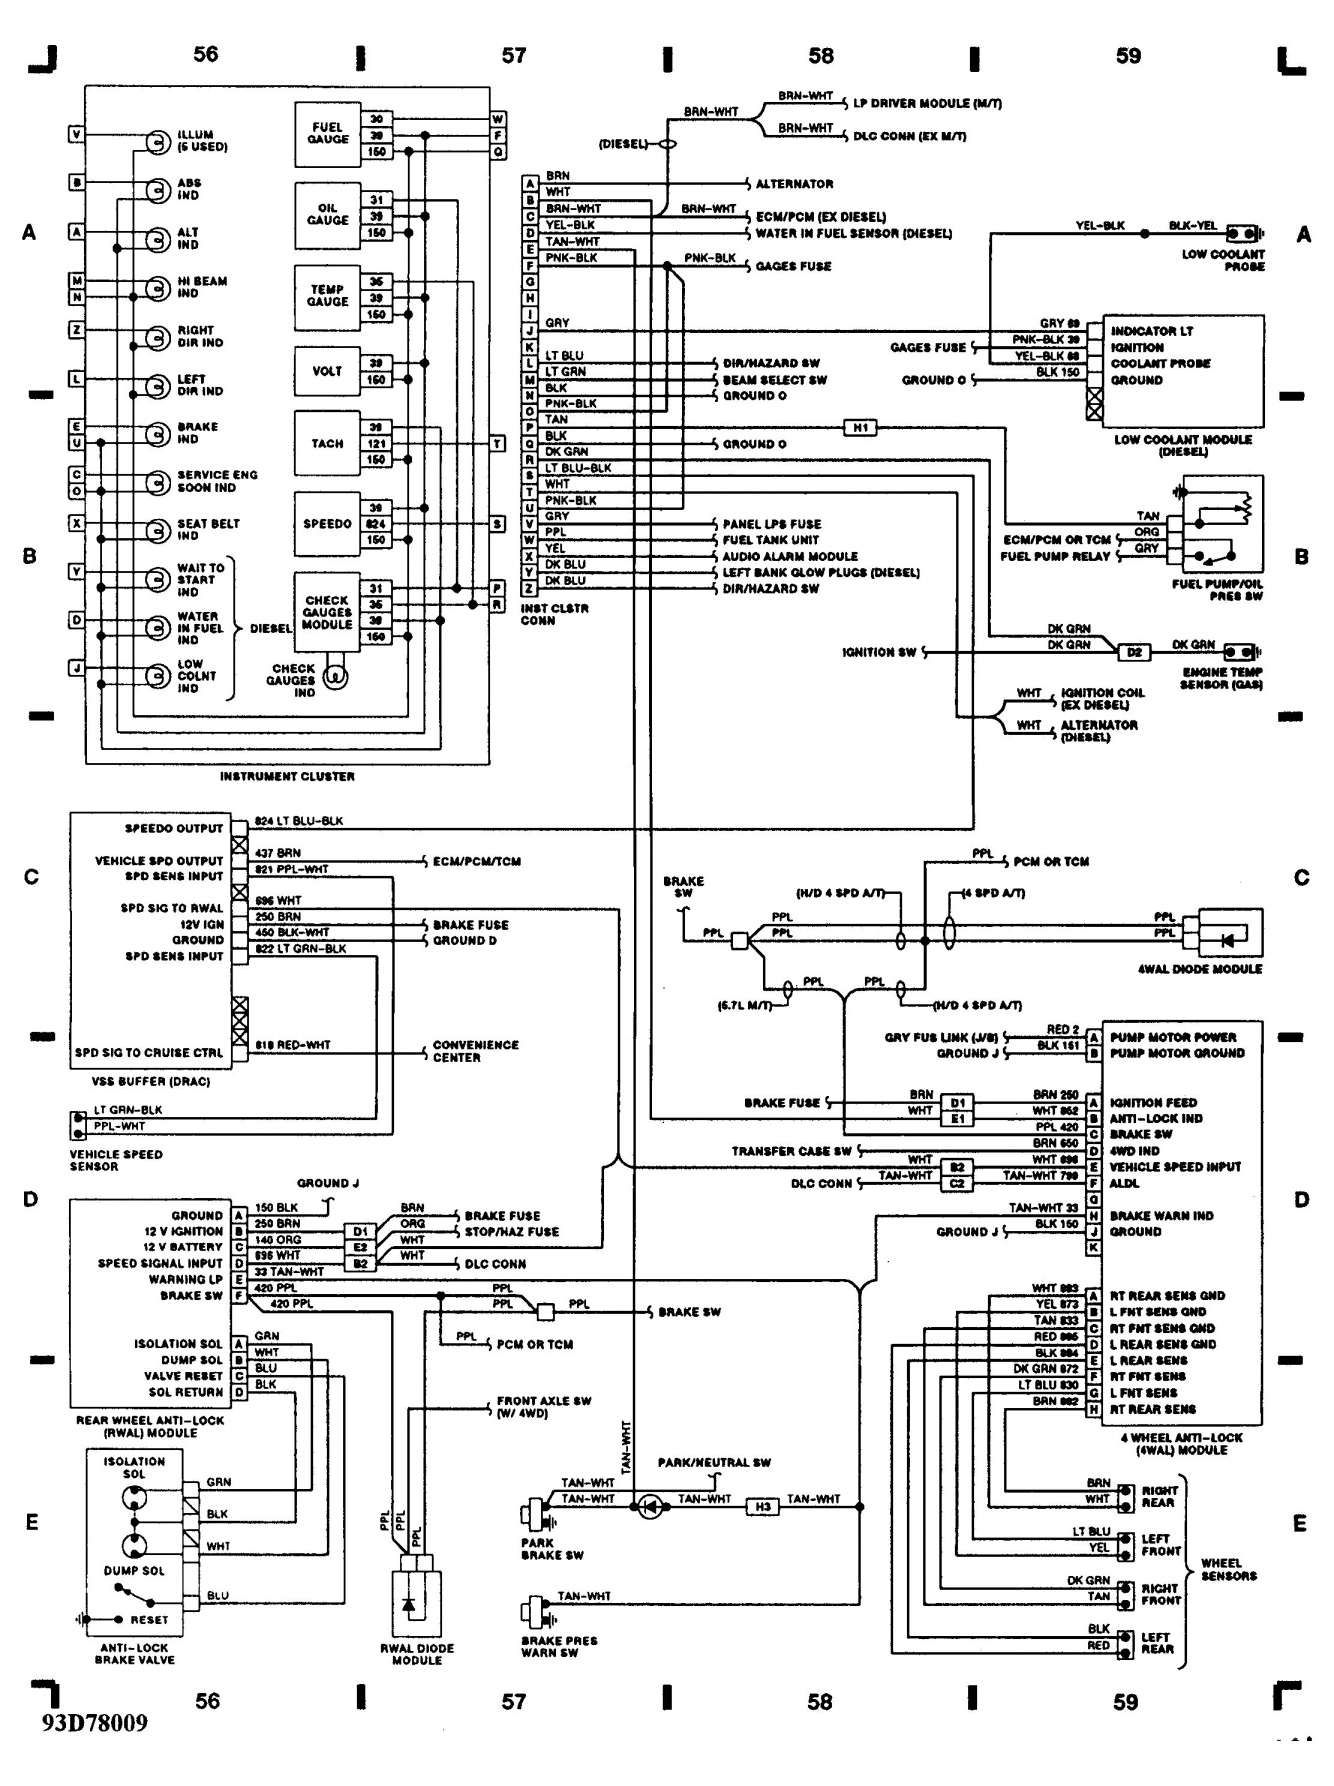 Chevy 305 Engine Wiring Diagram and Engine Wiring Harness Diagram - Getting  Started Of in 2020 | Toyota corolla, 87 chevy truck, Chevy truckswww.pinterest.ph